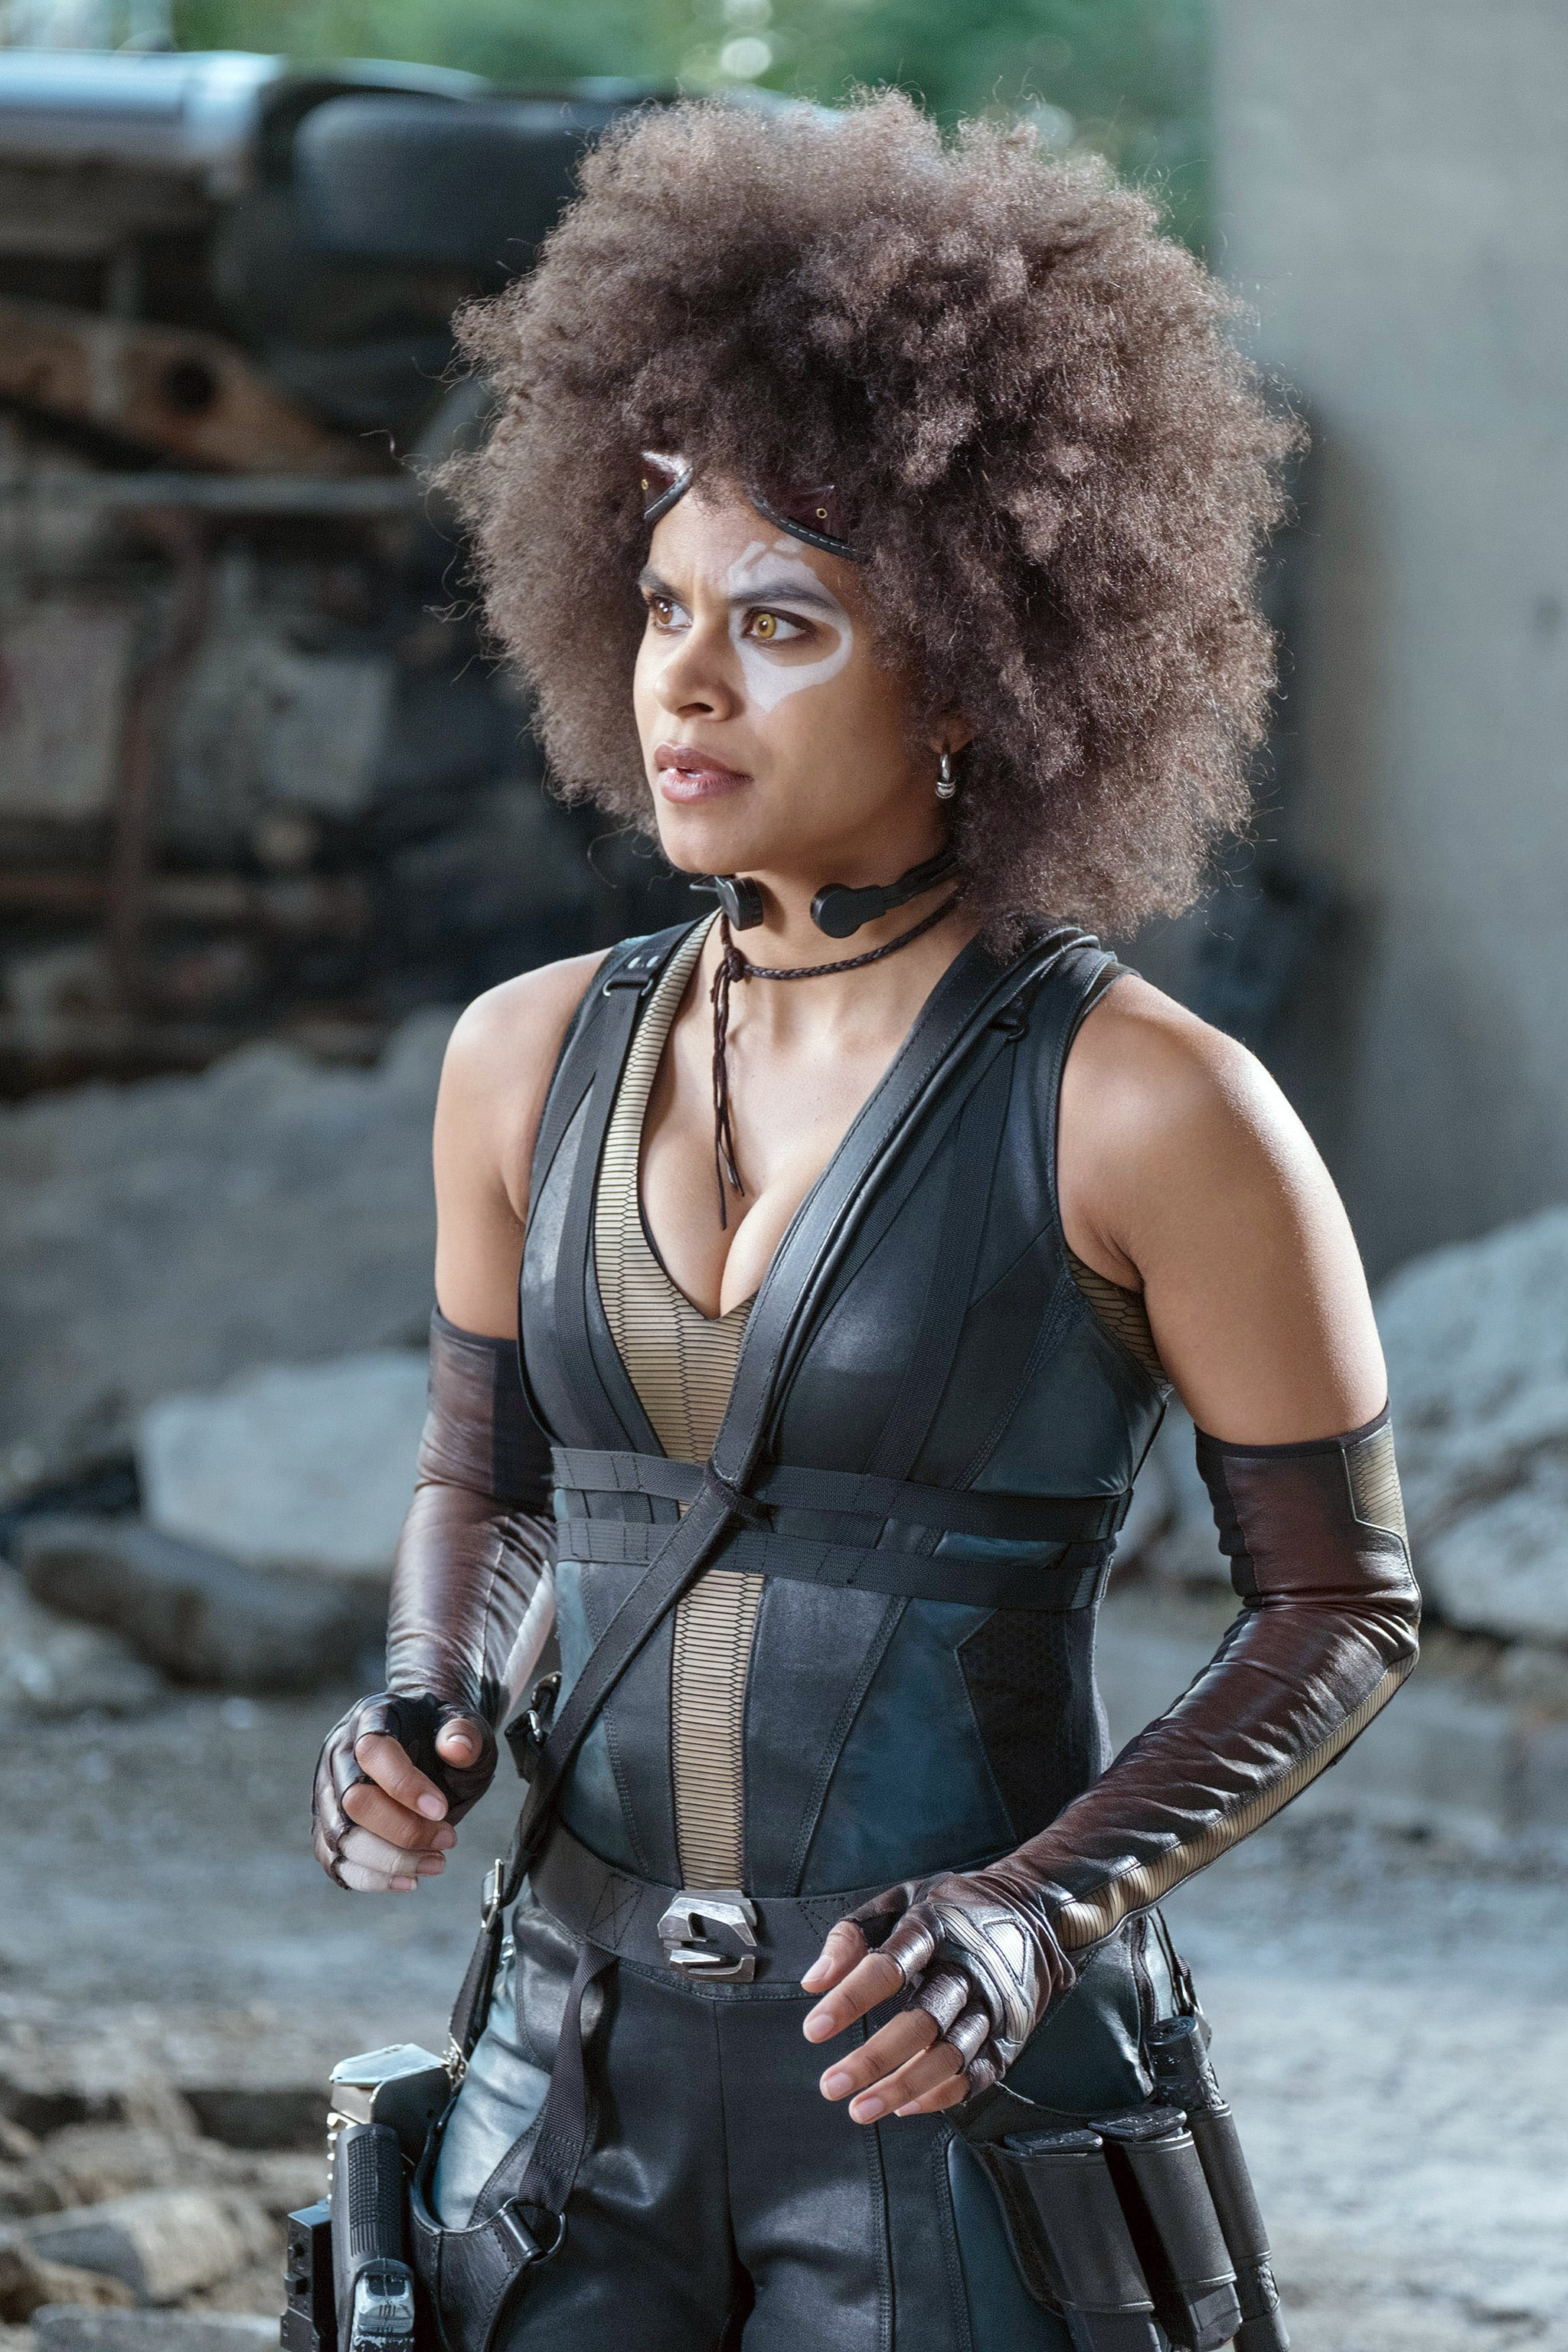 DEADPOOL 2, Zazie Beetz, 2018. ph: Joe Lederer/TM & Copyright  20th Century Fox Film Corp. All rights reserved./courtesy Everett Collection